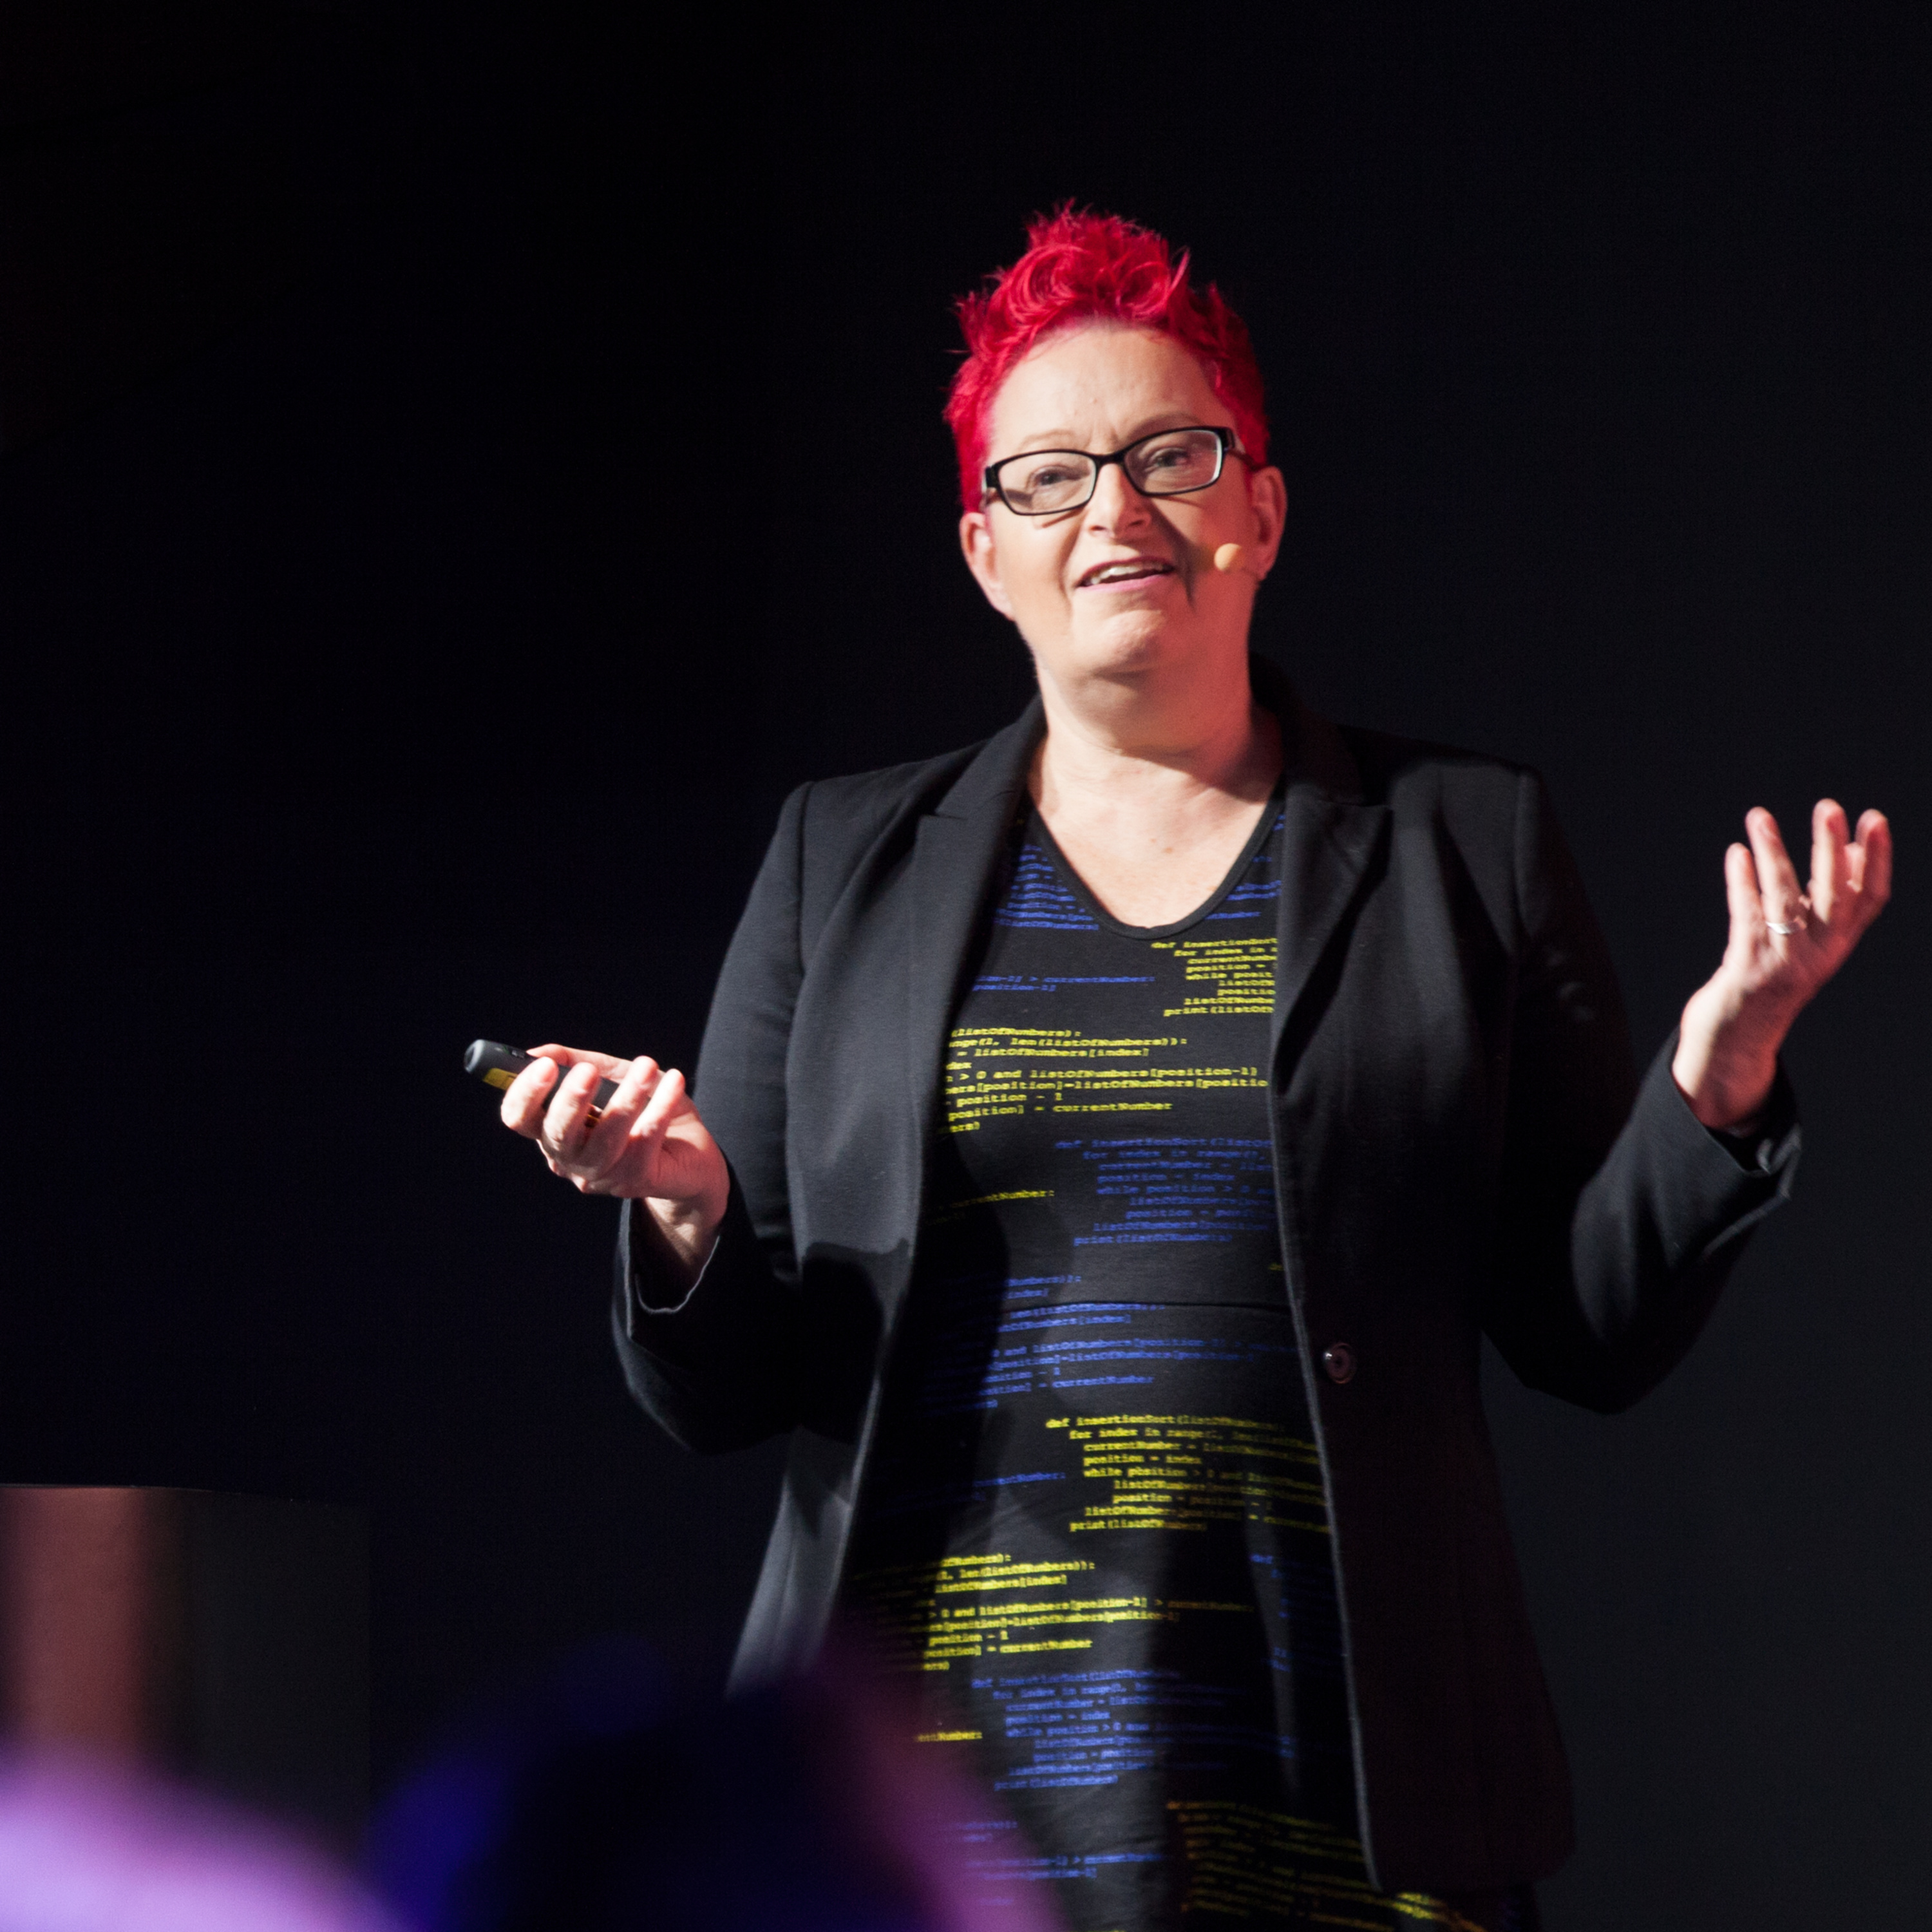 """""""If I can do it, so can you"""". - Keynote speech by Professor Sue Black"""